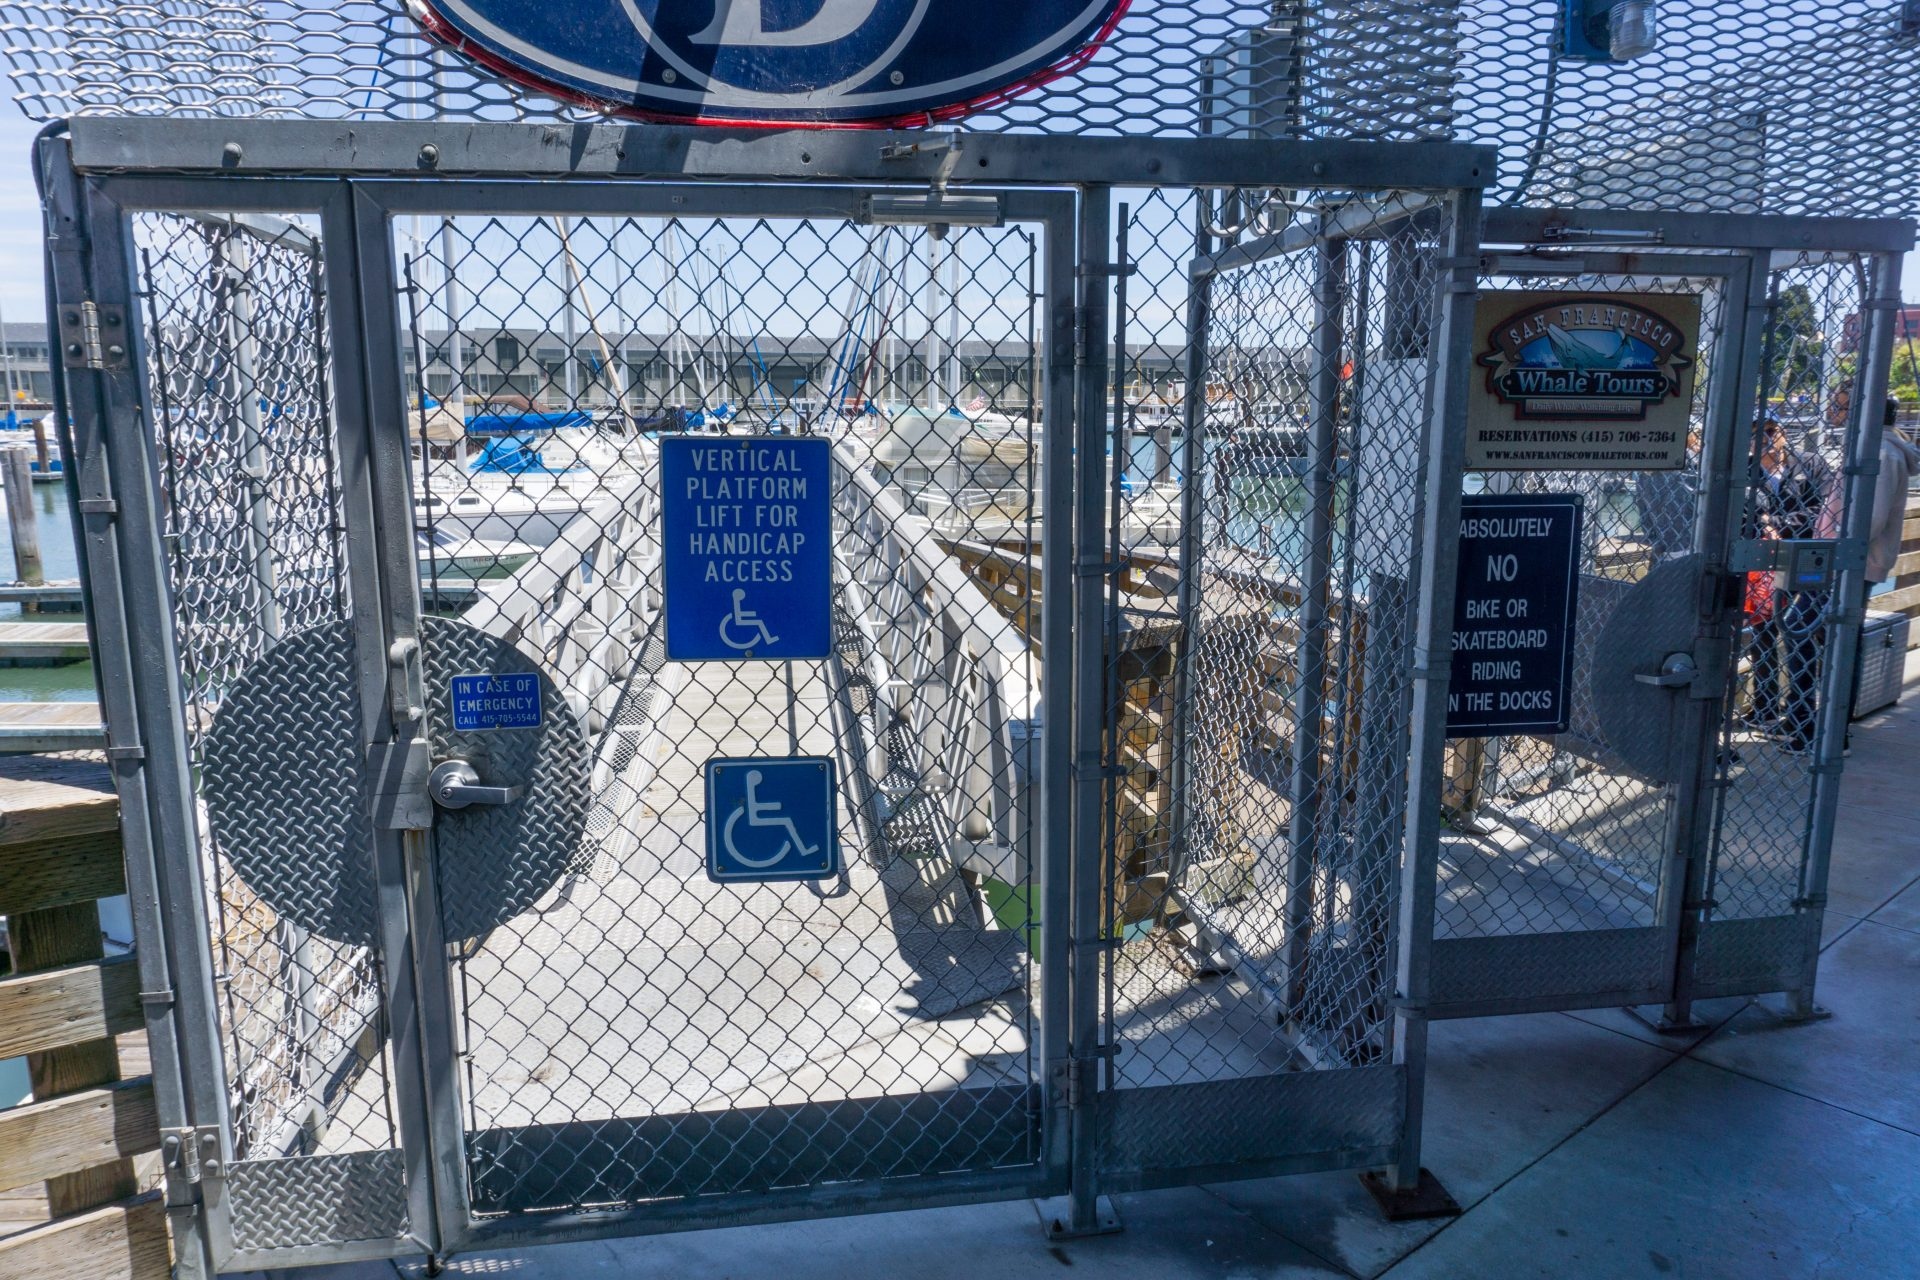 Chainlink gate with sign: